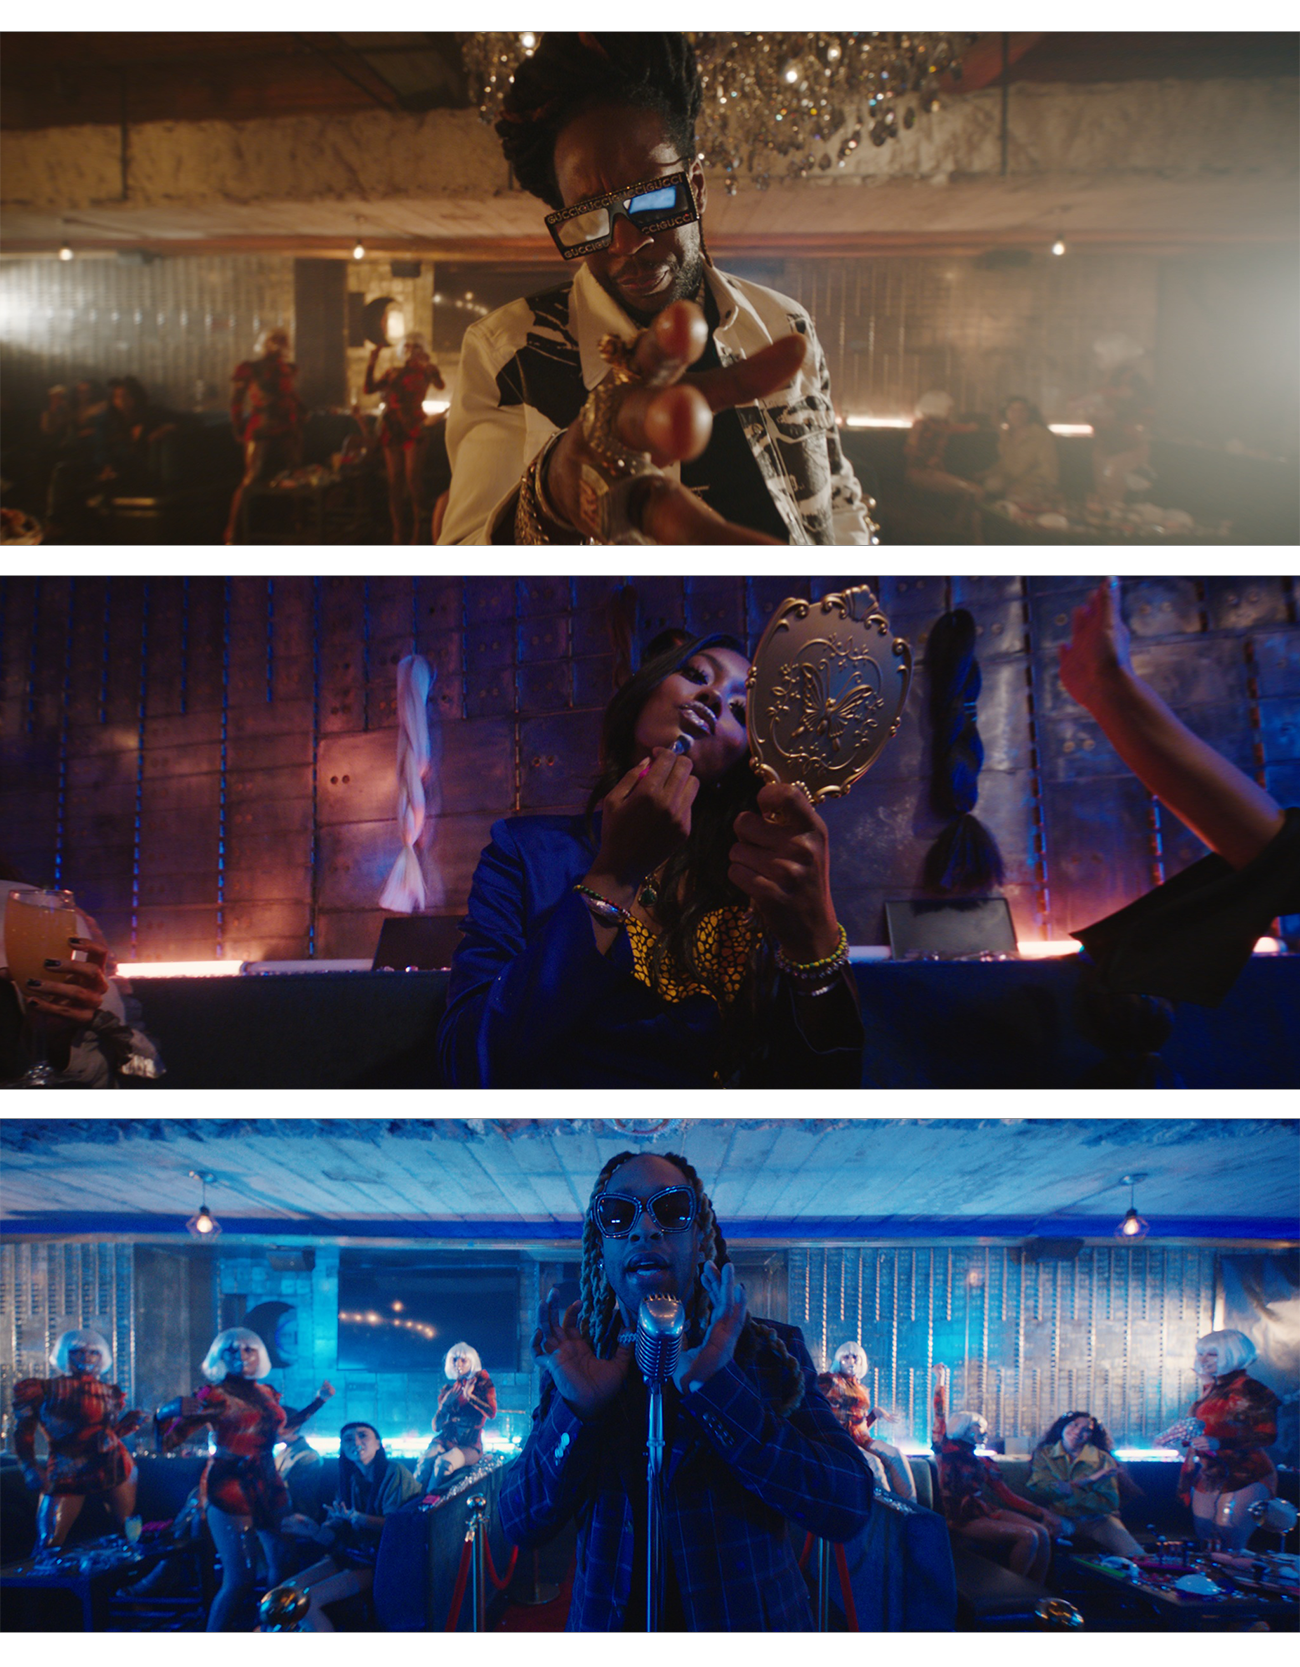 "2 CHainz ft ty dolla $ign""girls best friend"" - director: sebastian sdaigui"